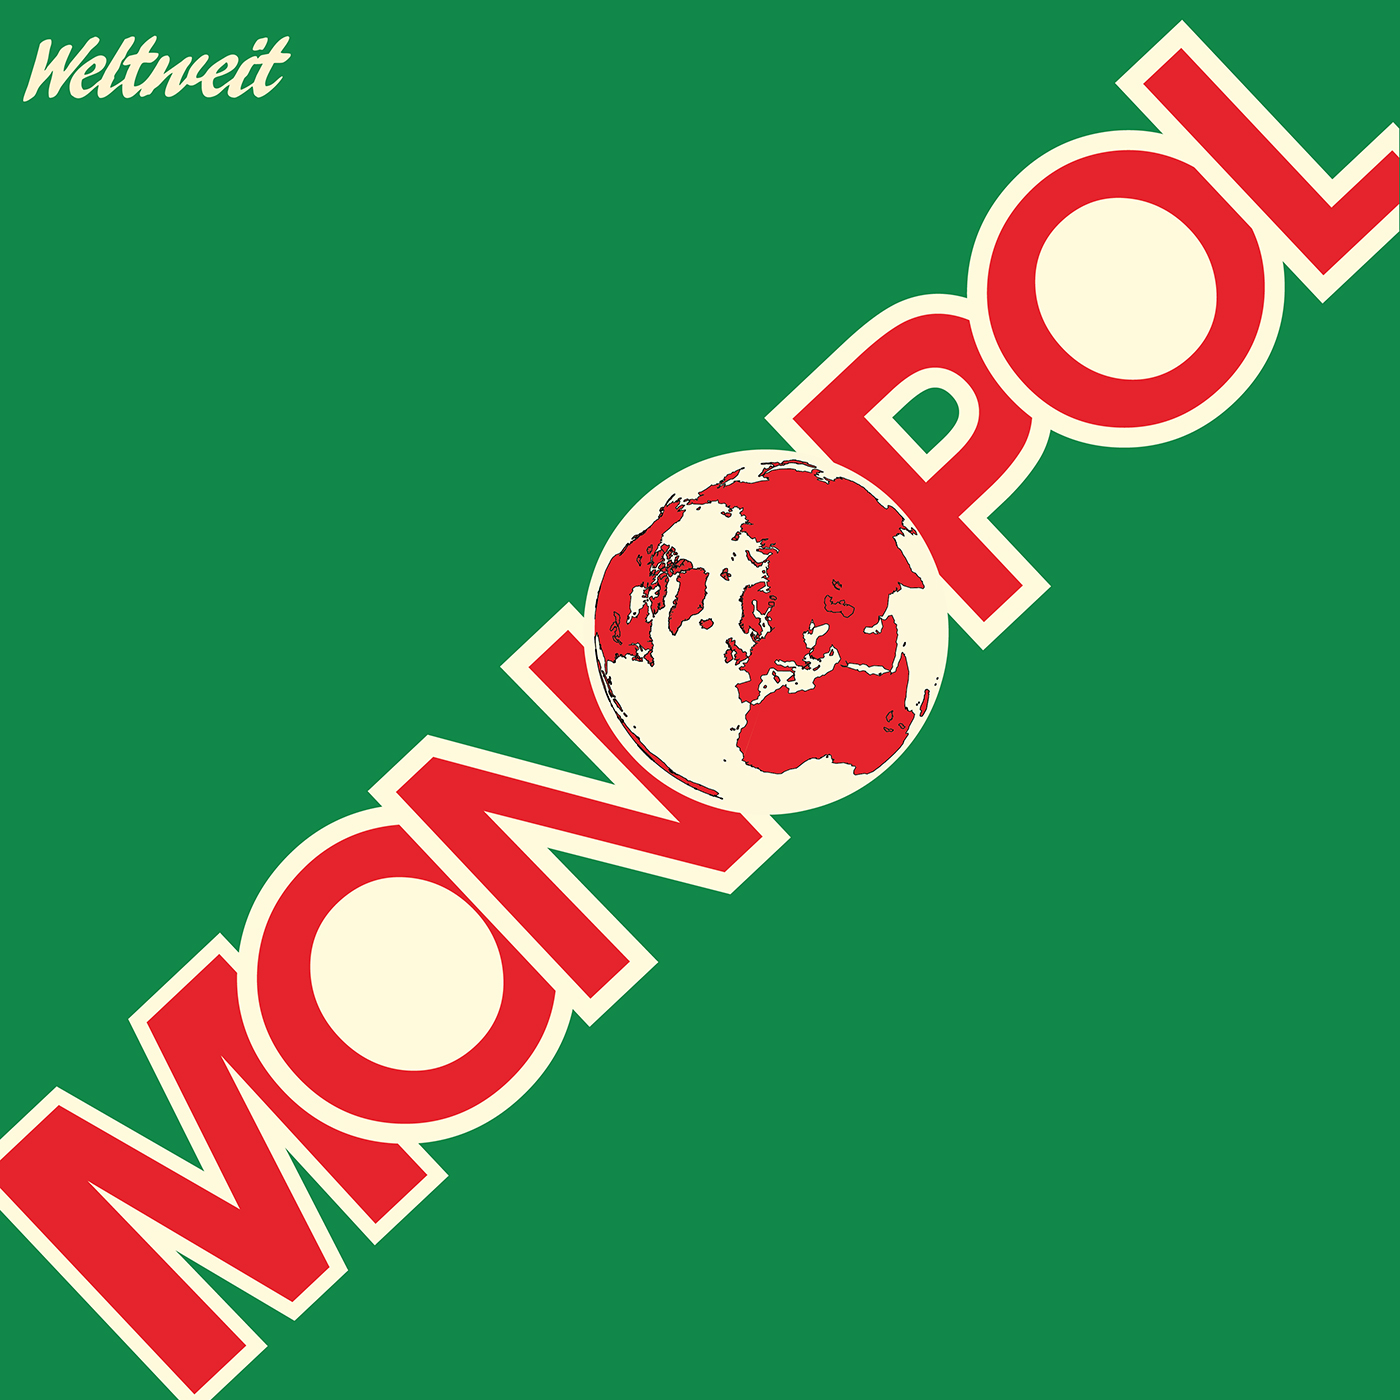 Medical Records - Monopol and Martial Canterel out on end January